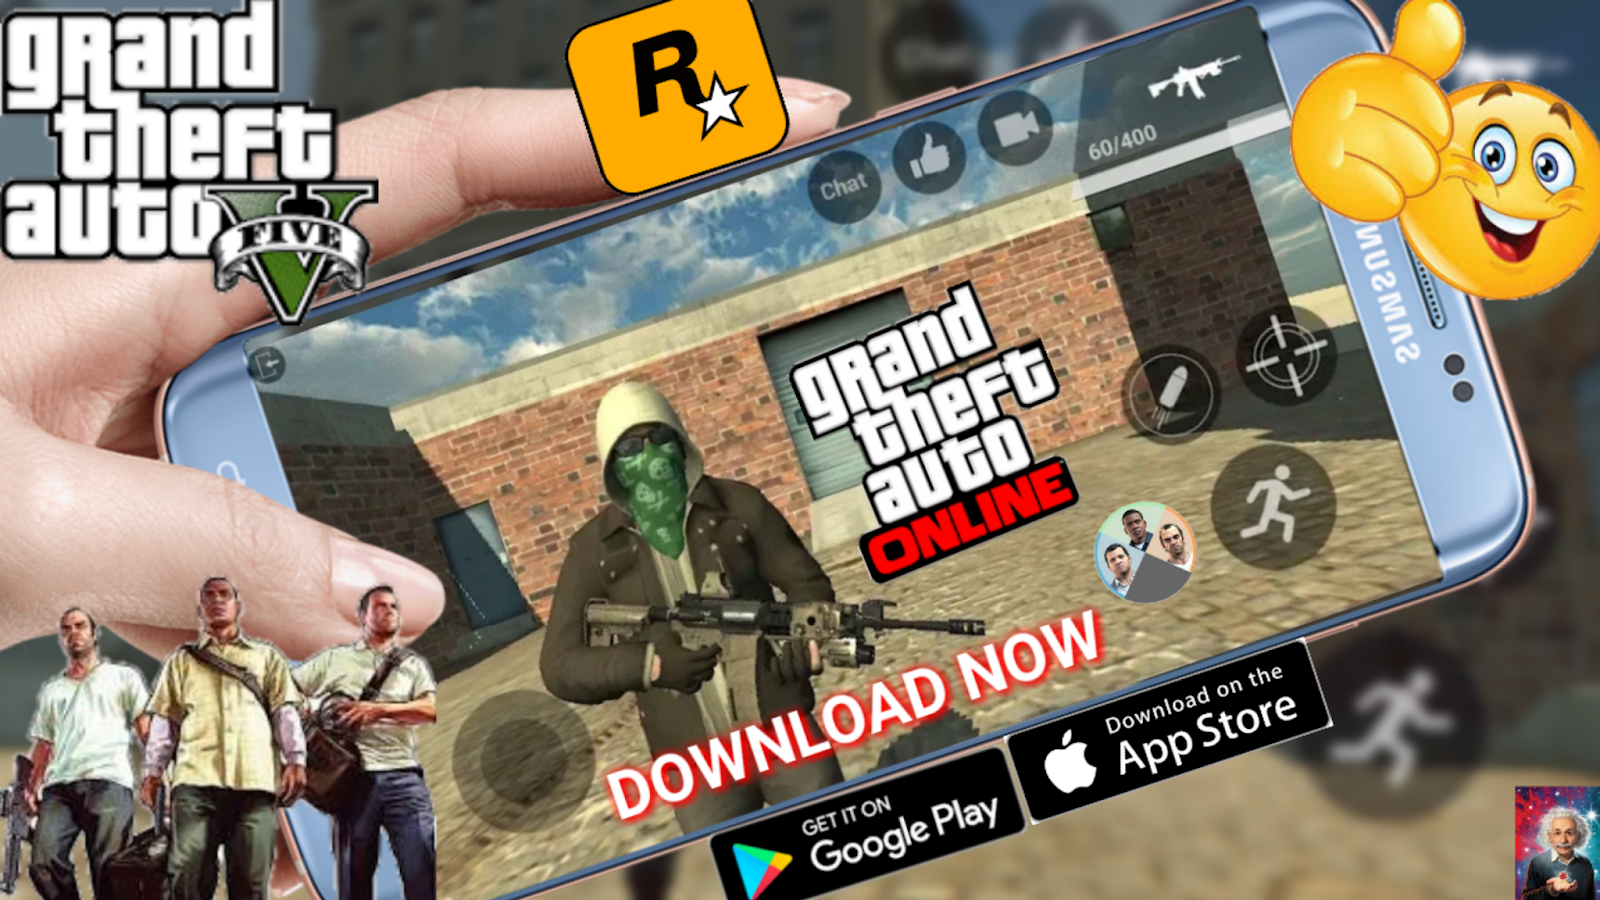 Gta 5 apk for android online | Download GTA 5 APK For Android  2019